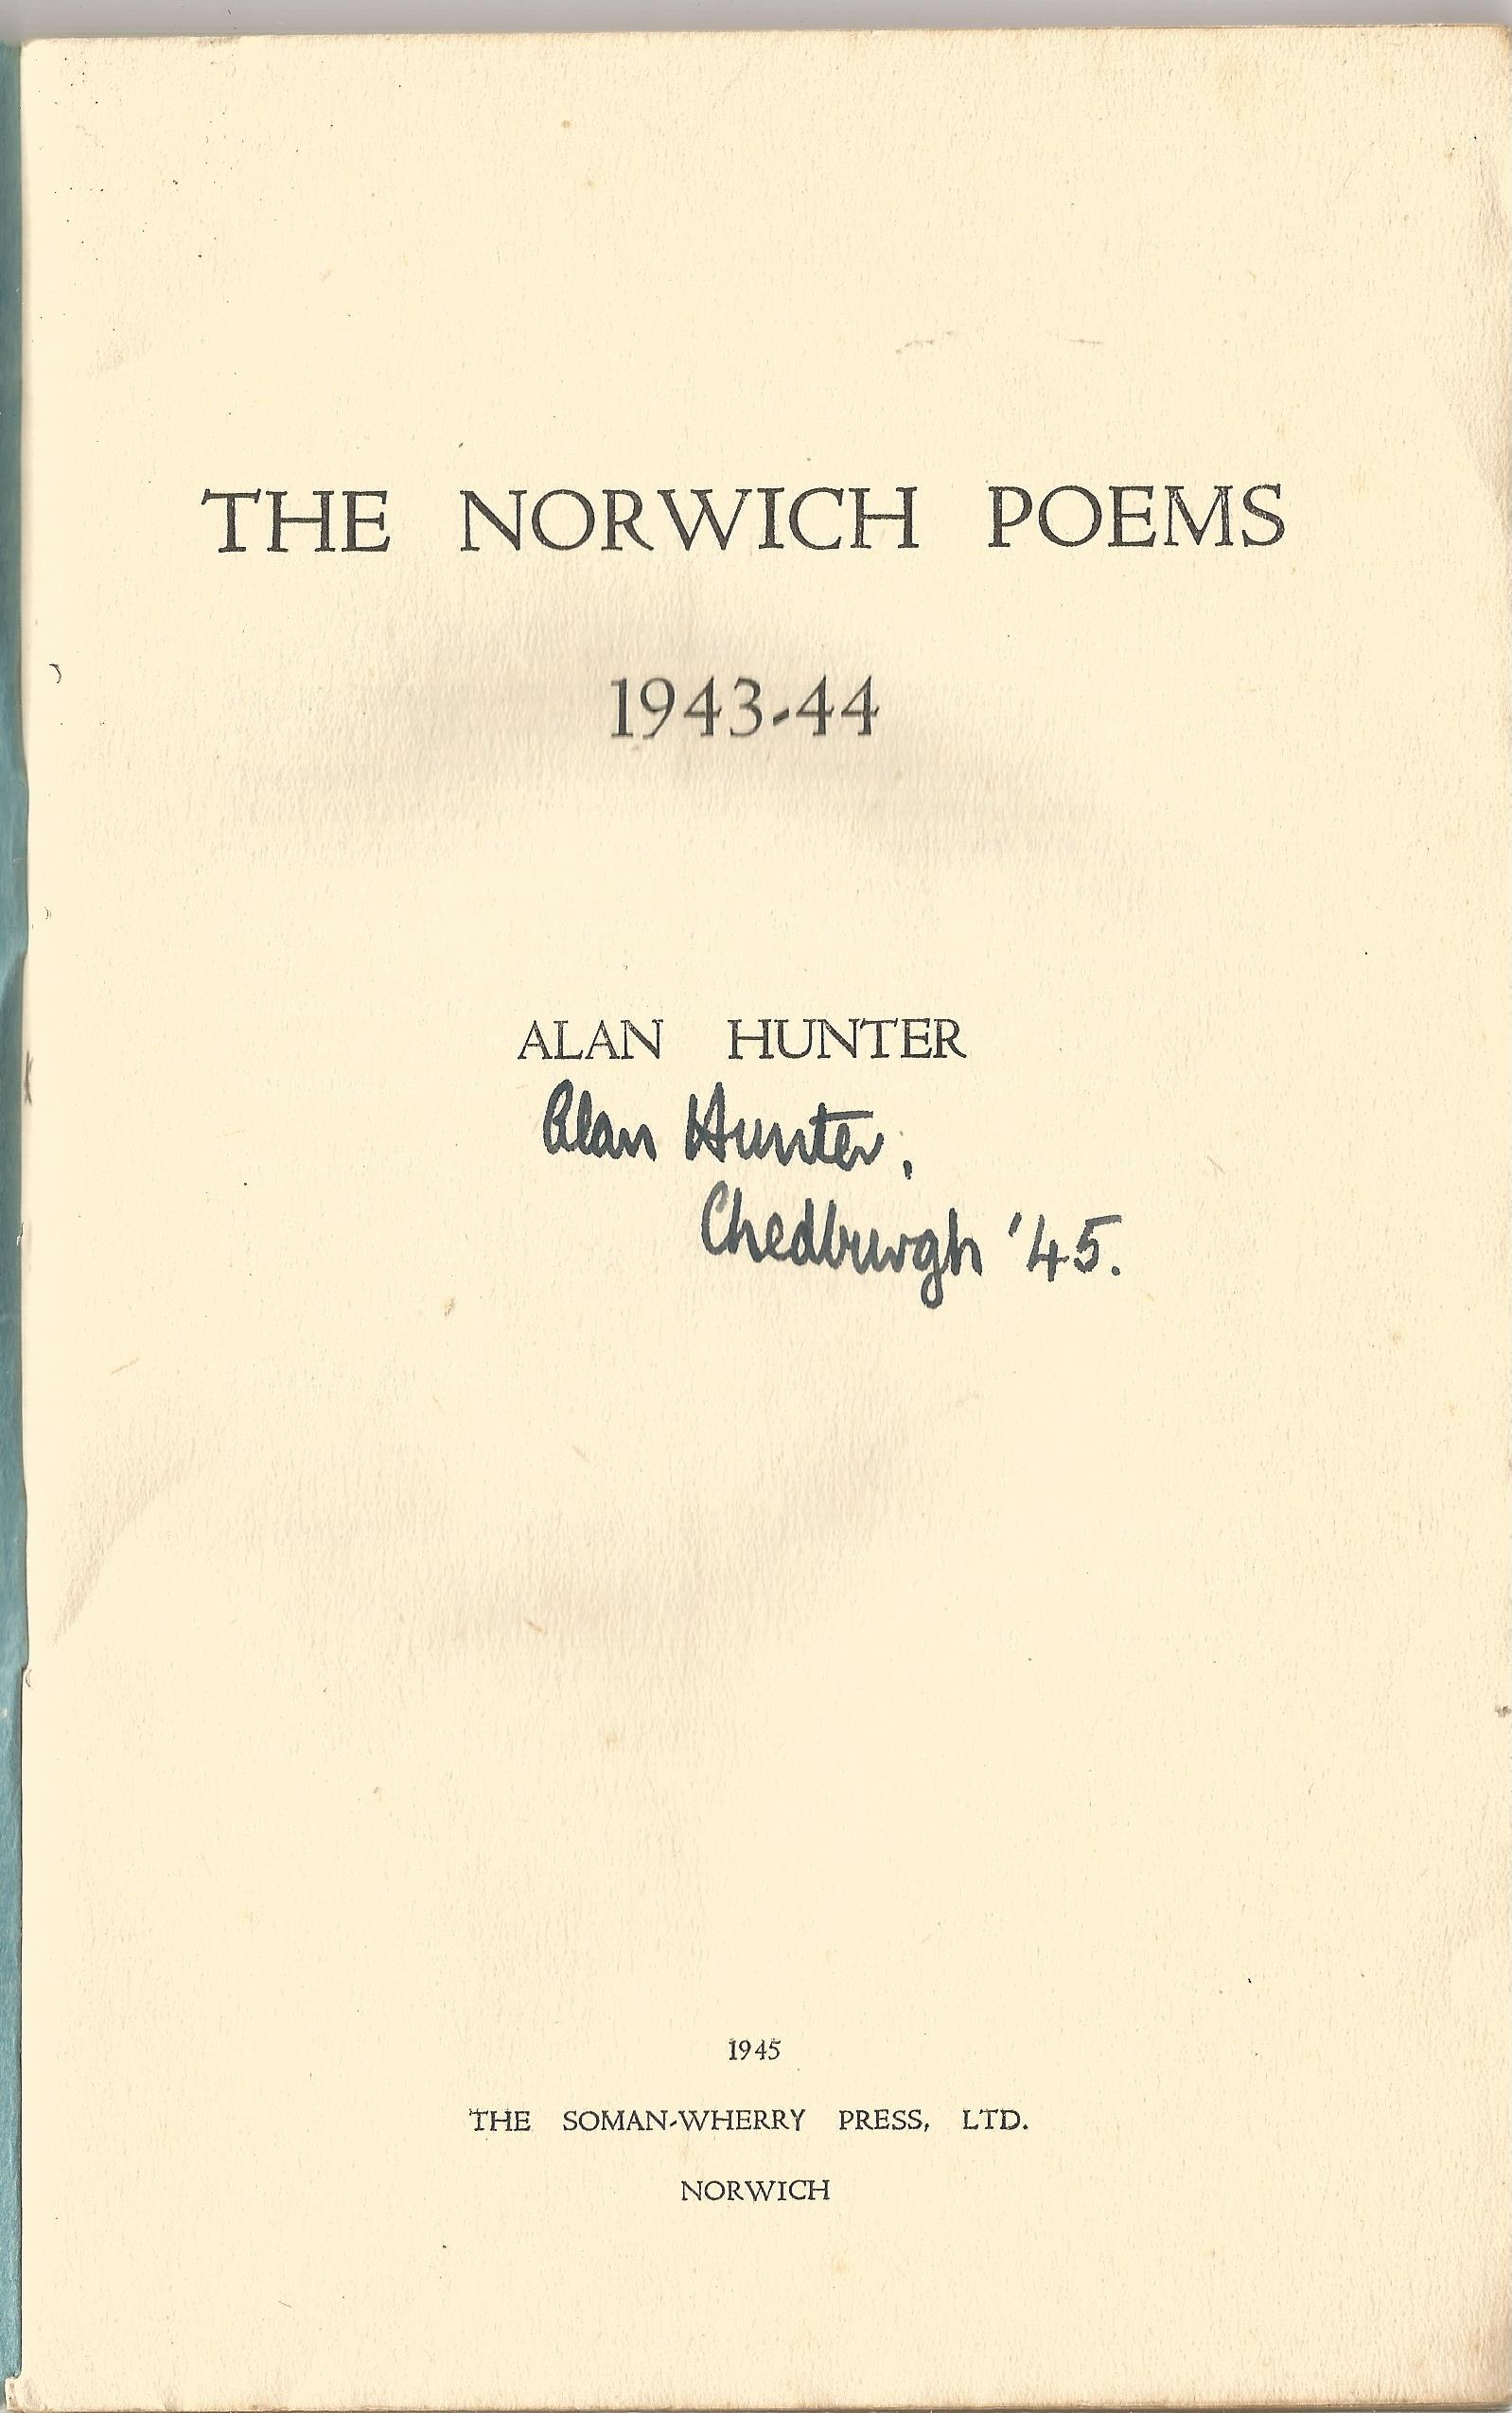 Alan Hunter Paperback Book The Norwich Poems signed by the Author on the Title Page and dated 1945 - Image 2 of 2